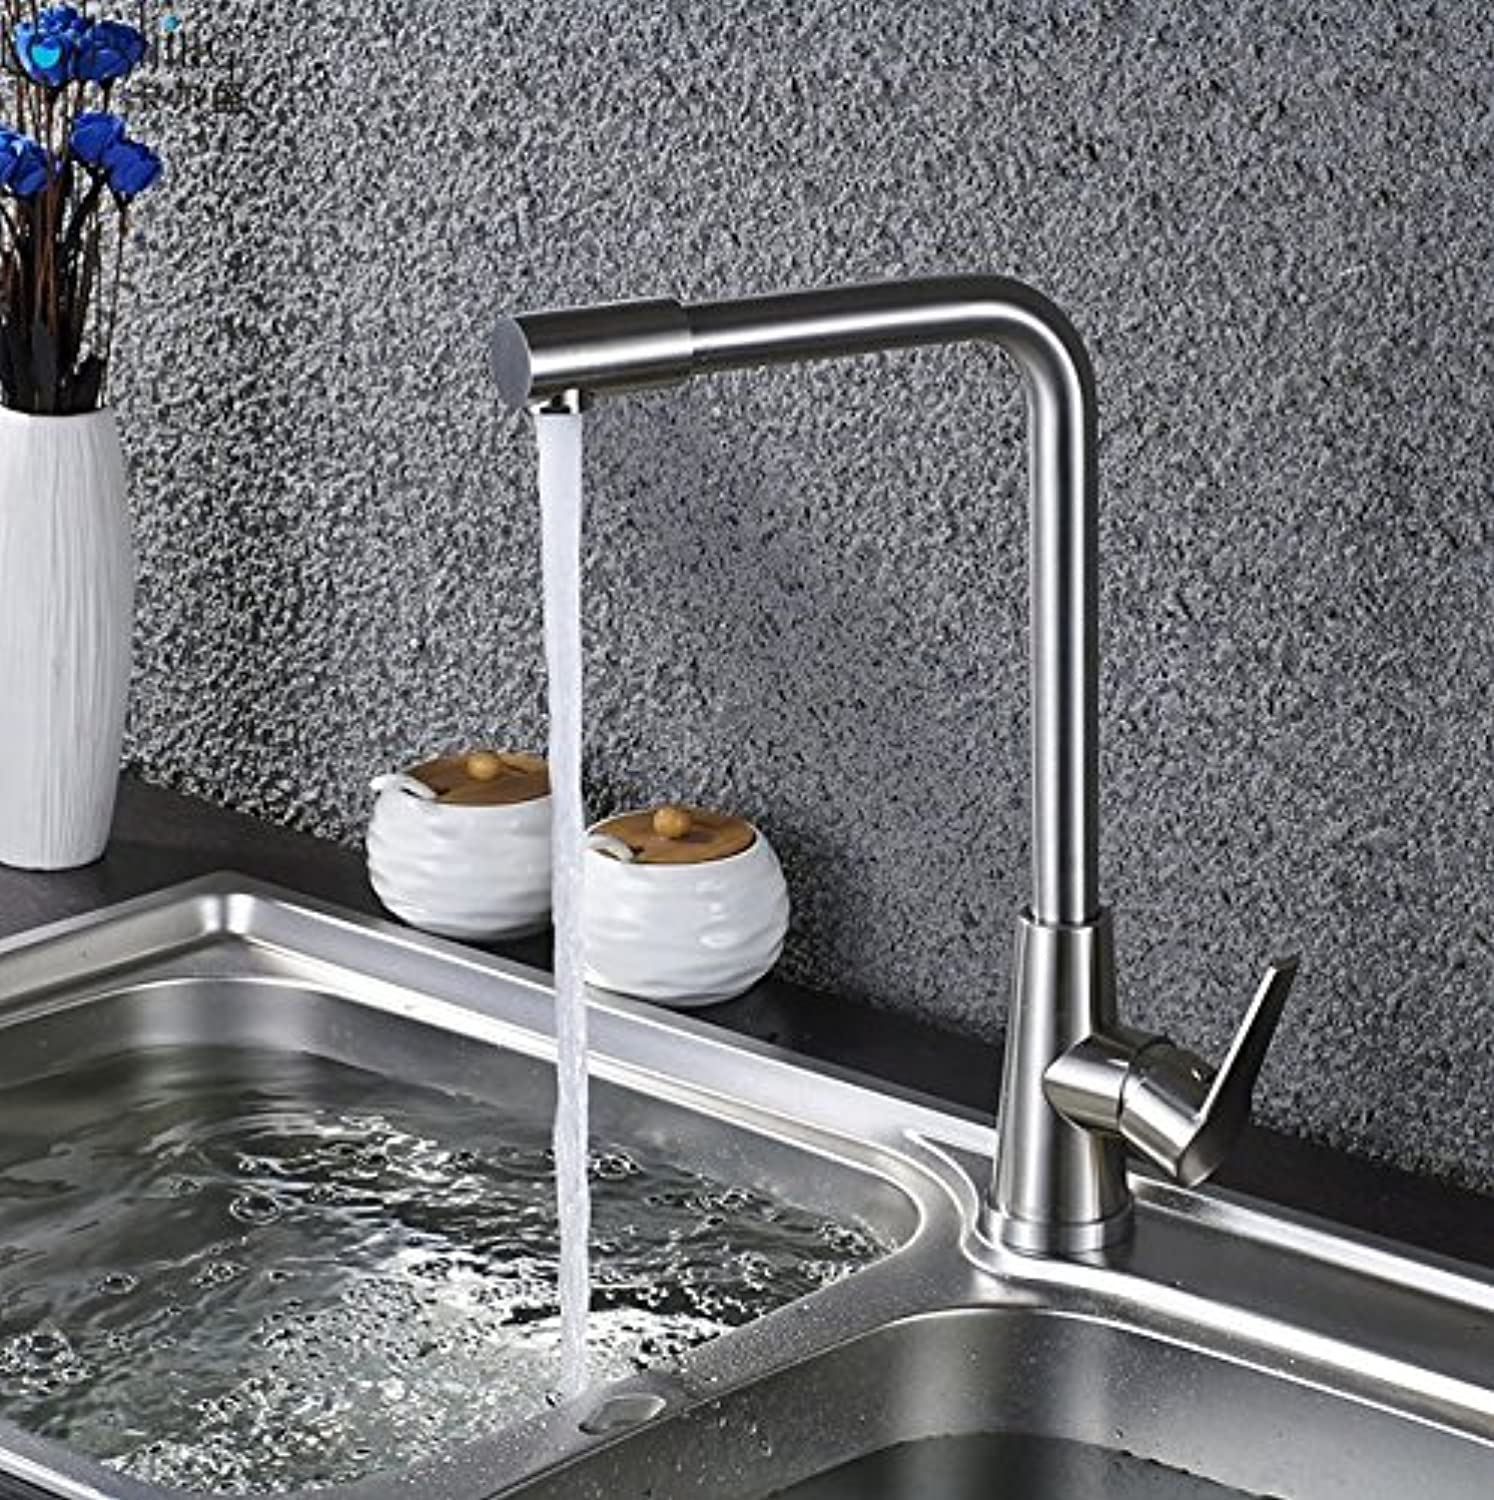 Retro Deluxe Faucetingingkitchen Faucet Large Seven Character redating Kitchen Pots, Kitchen Faucets, Cold and Hot Faucets.